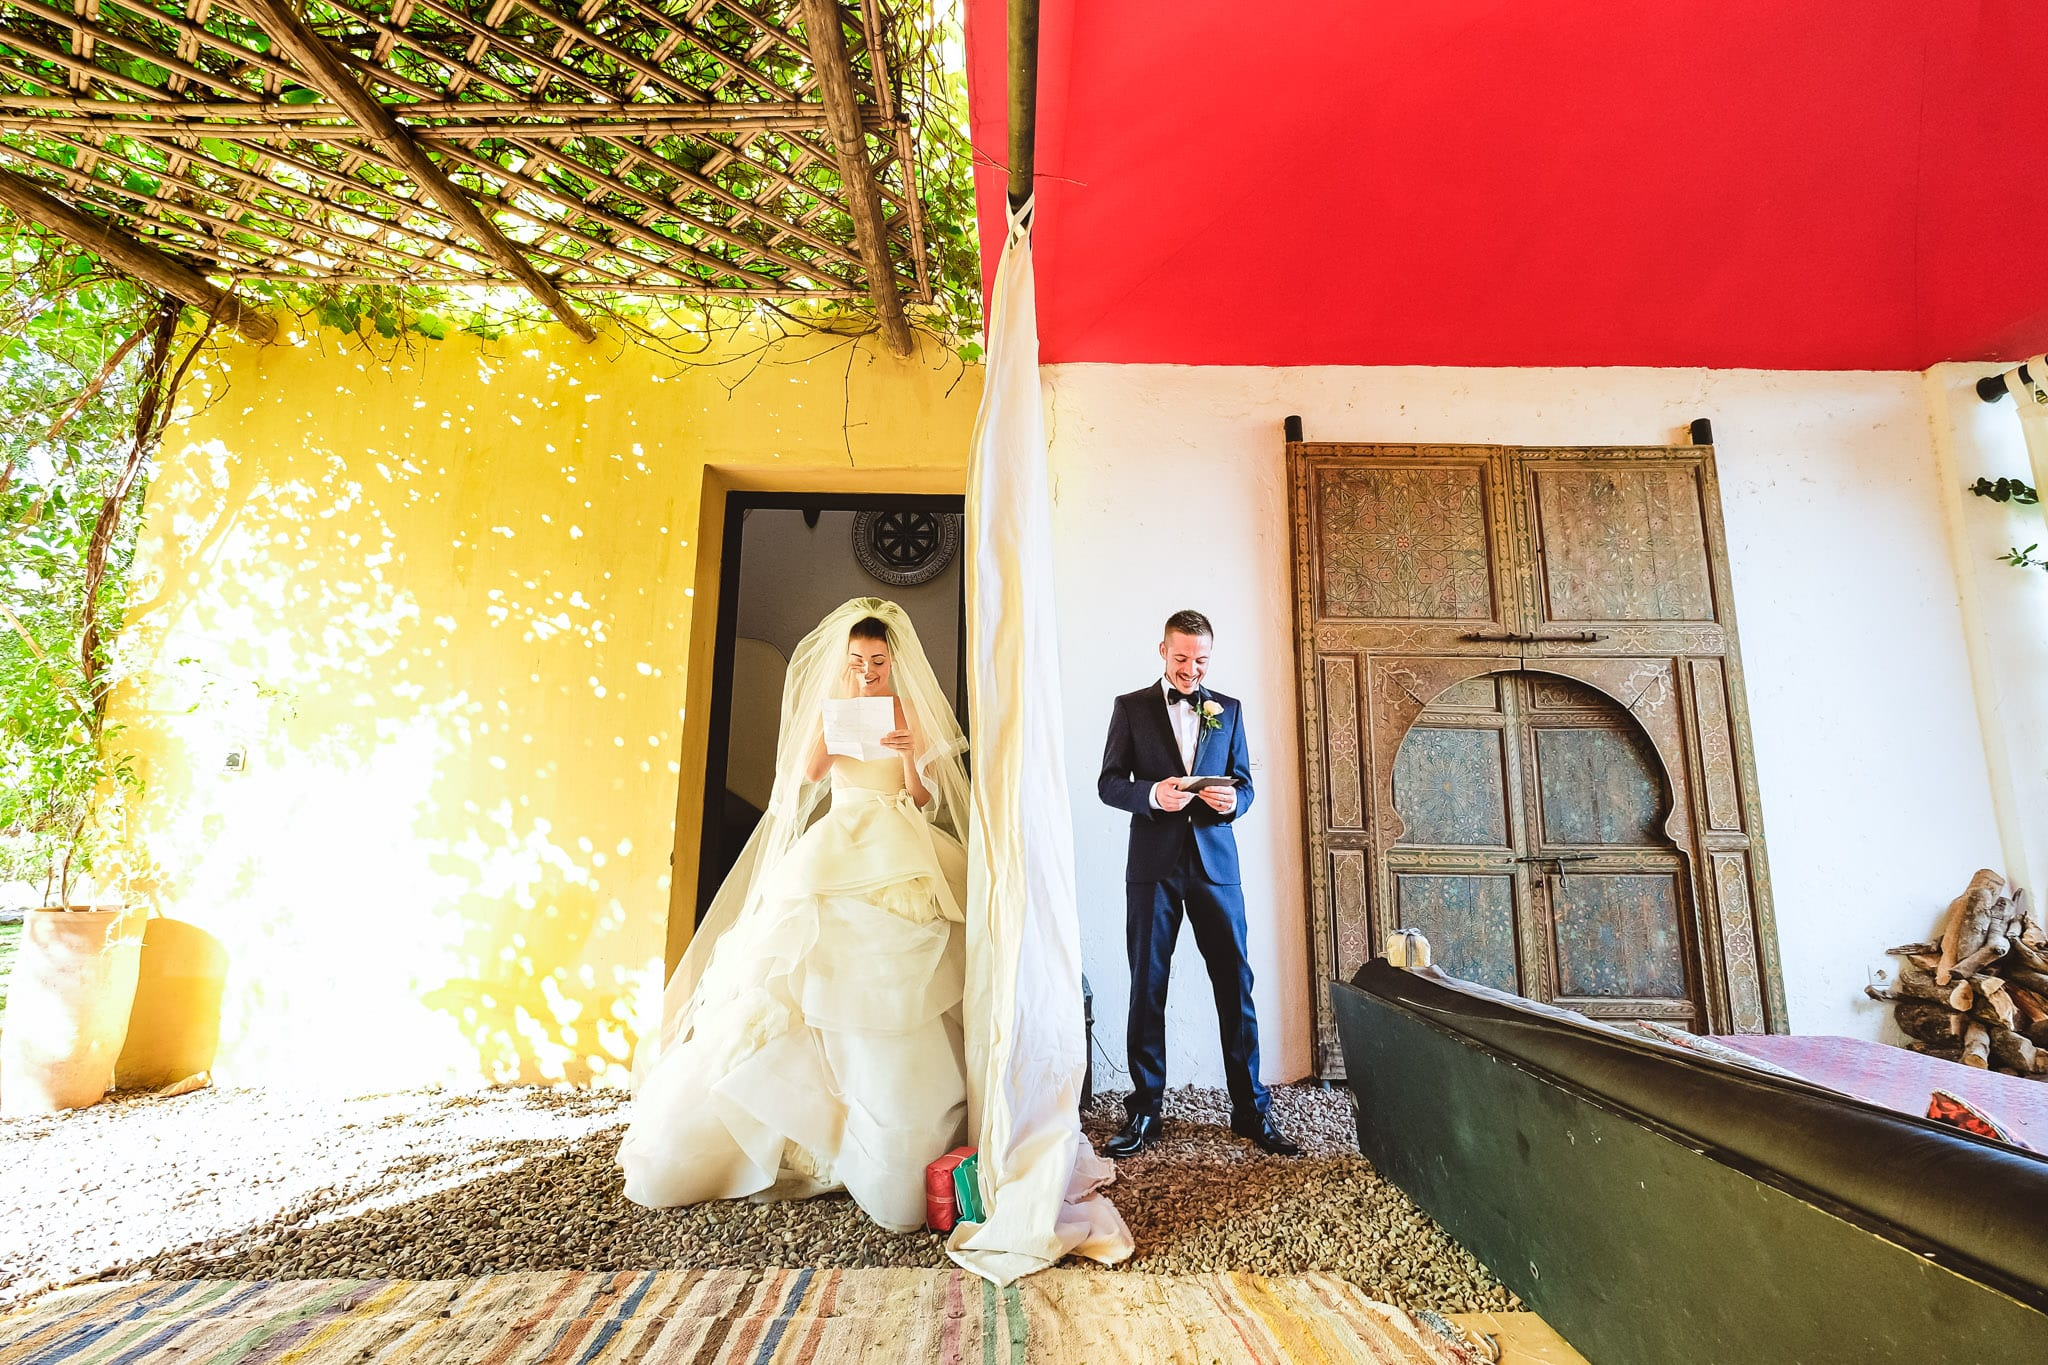 Bride and groom first look at a destination wedding in Morocco